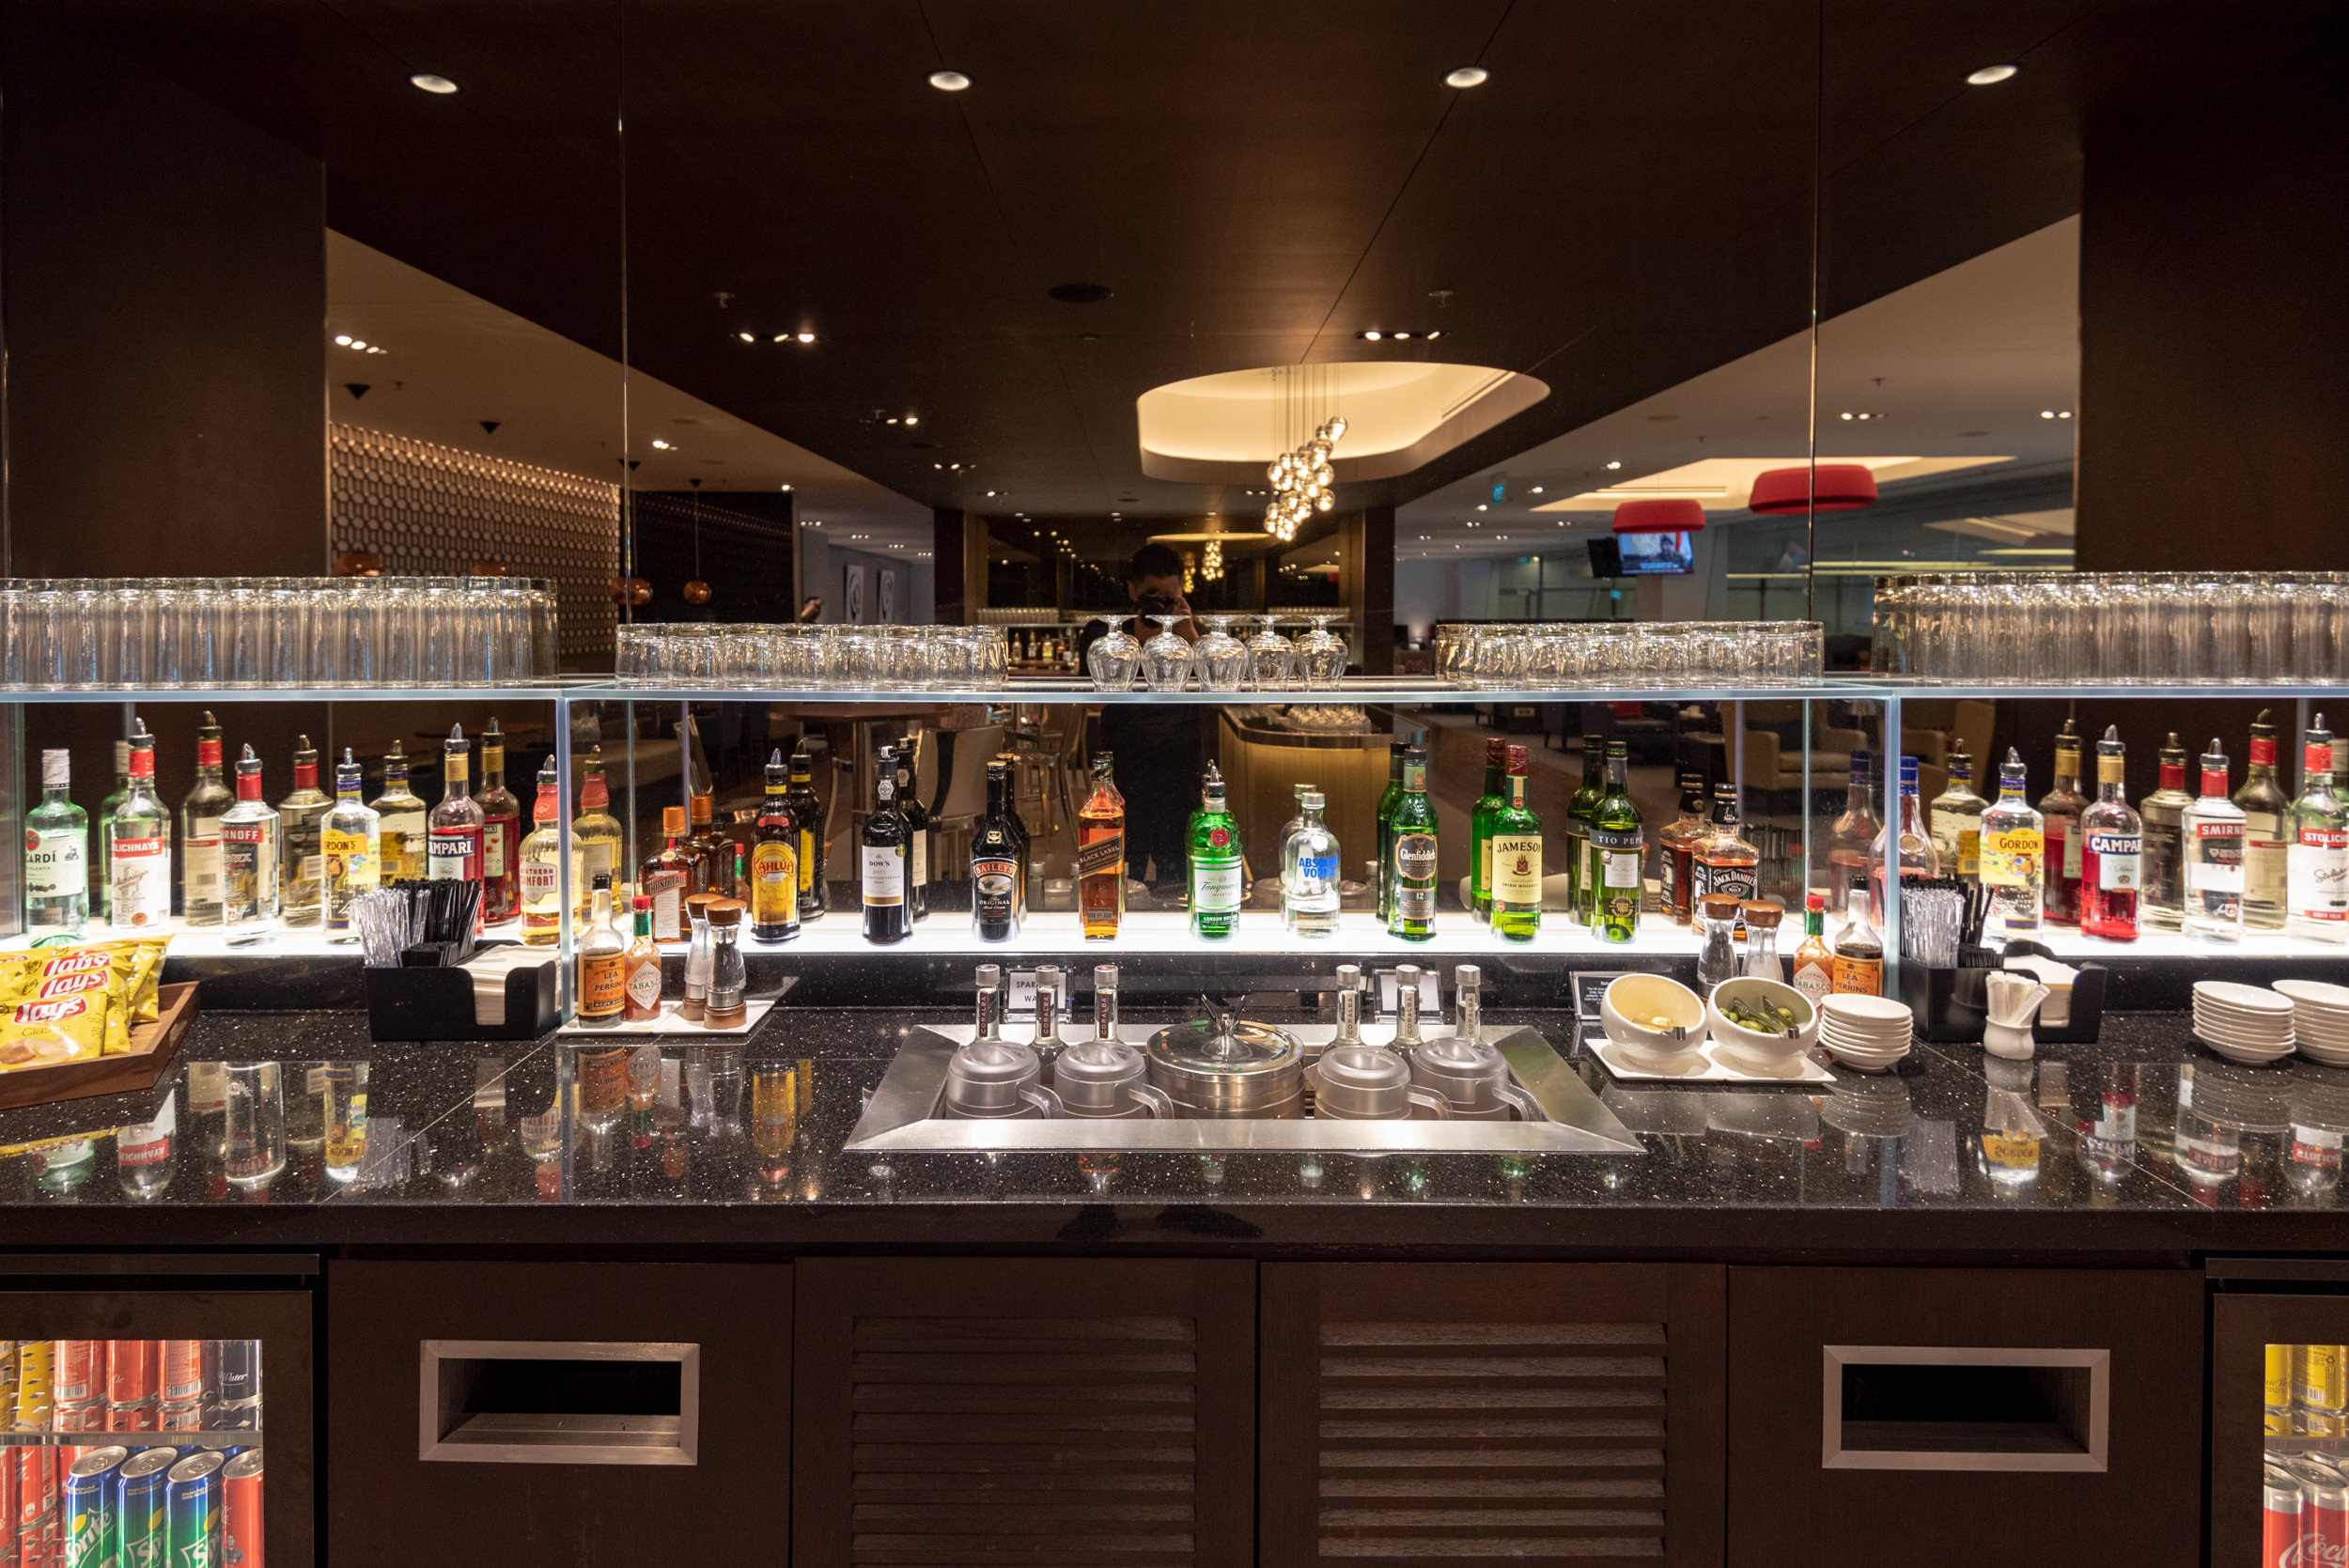 Wide Selection of Spirits and Drinks  British Airways Lounge and Concorde Bar - Singapore Changi Airport (SIN)